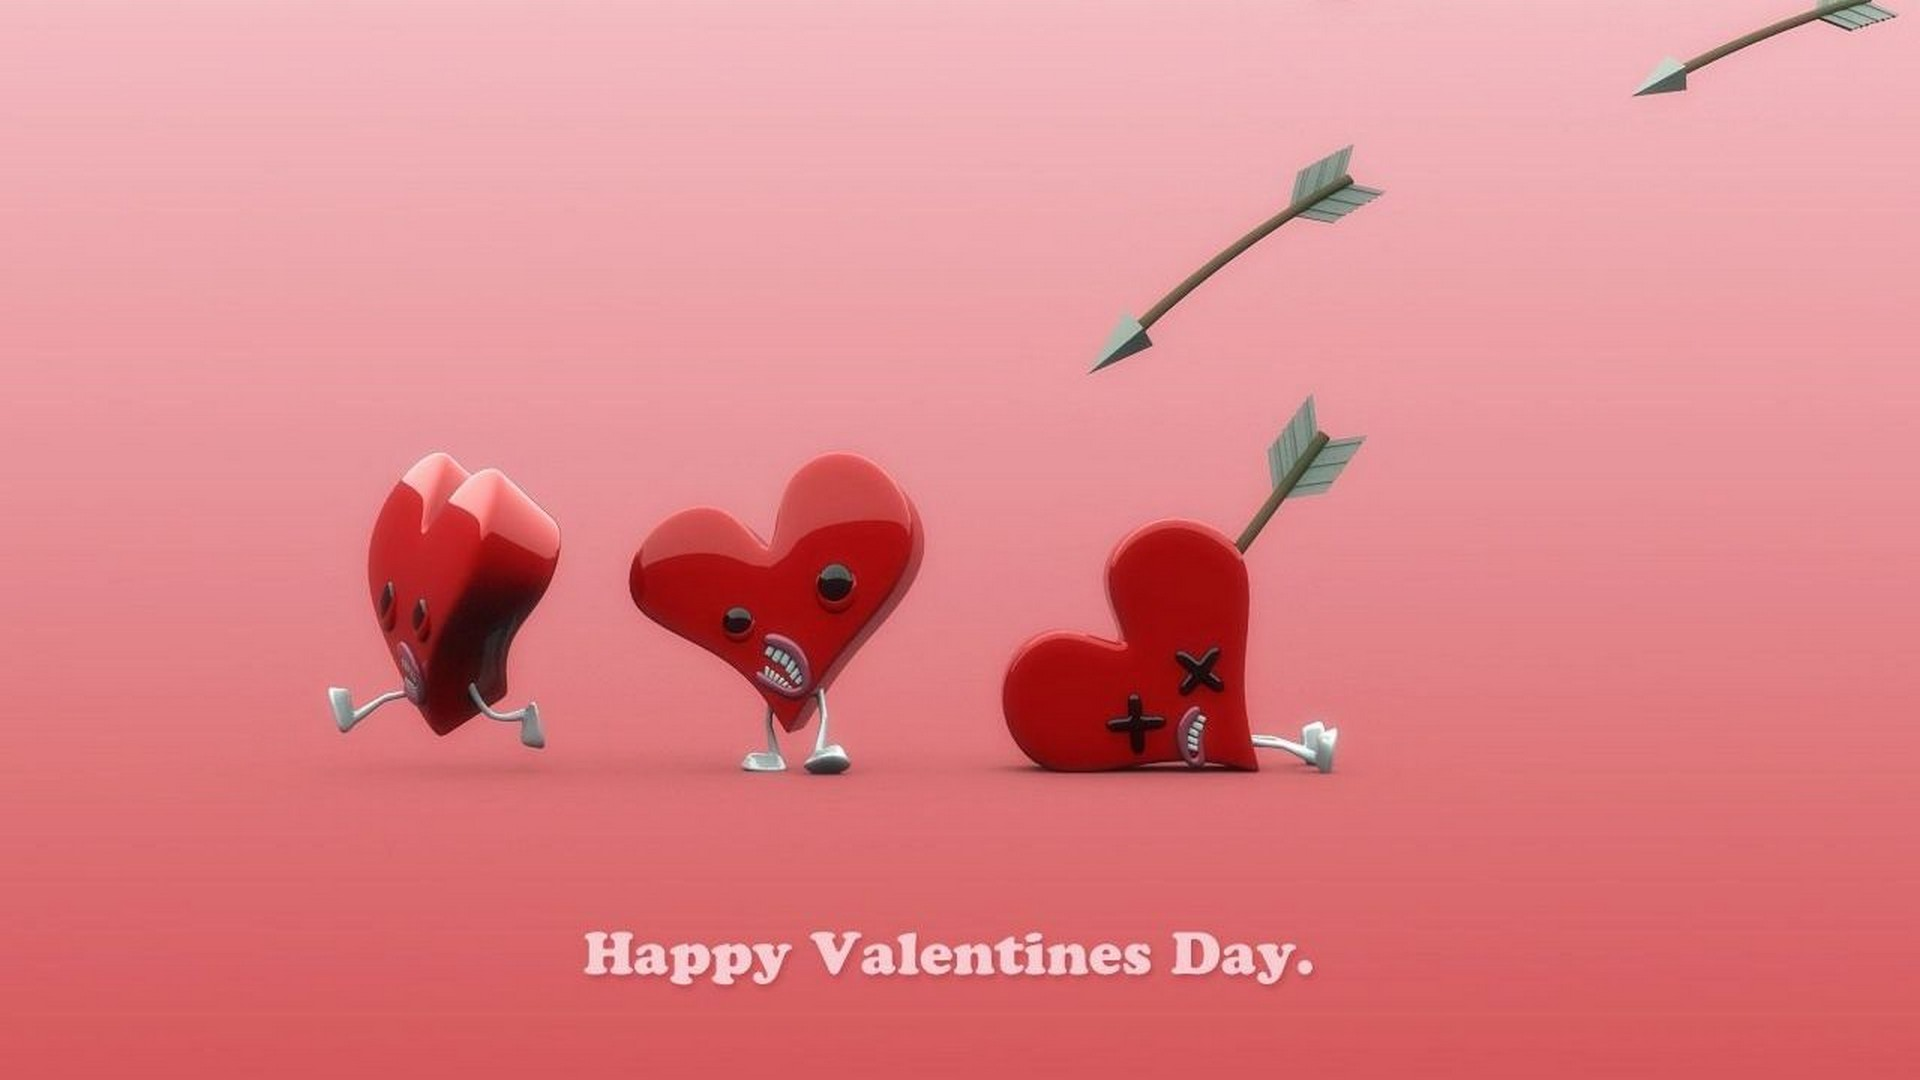 Animated Valentines Day Wallpapers